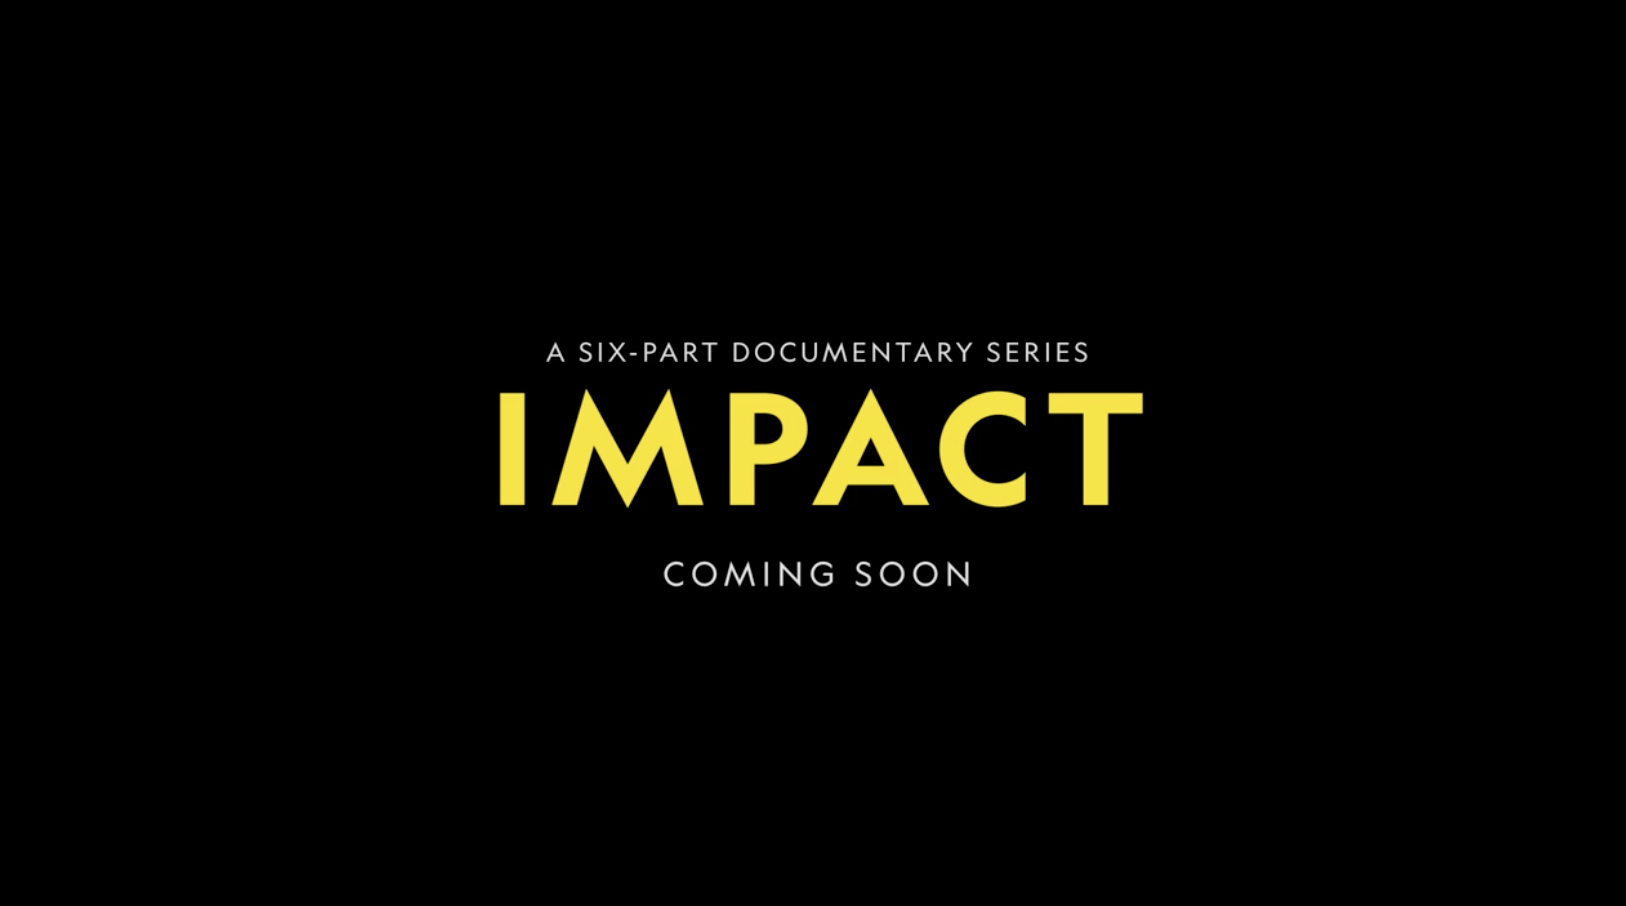 Gal Gadot Shares First Look at 'National Geographic Presents: IMPACT with Gal Gadot'